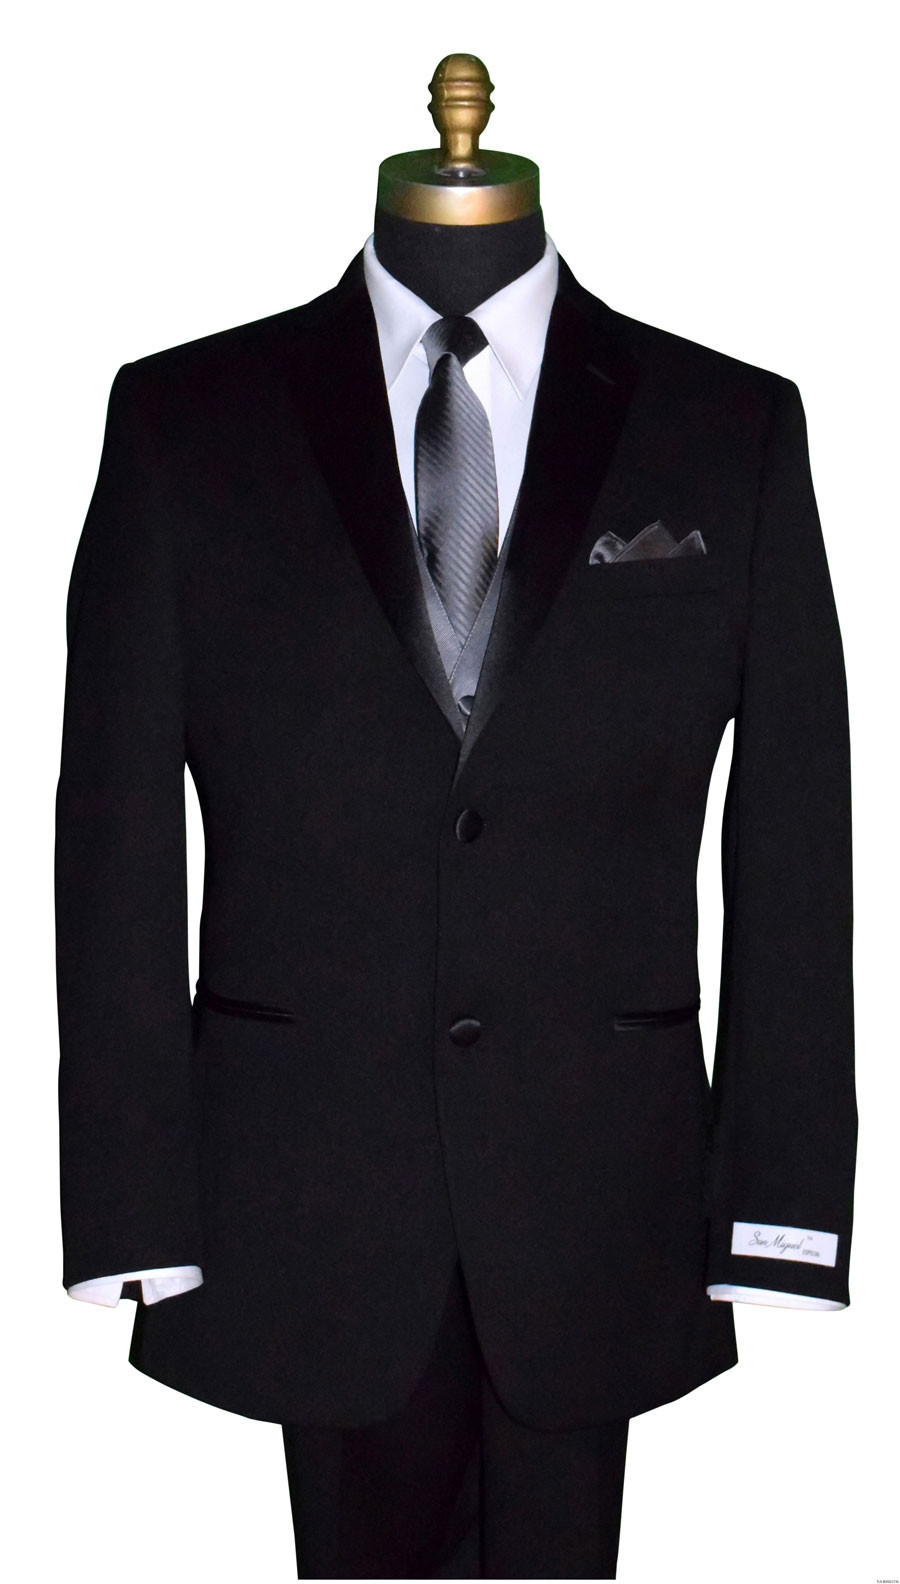 men's black tuxedo with charcoal striped tie and charcoal vest